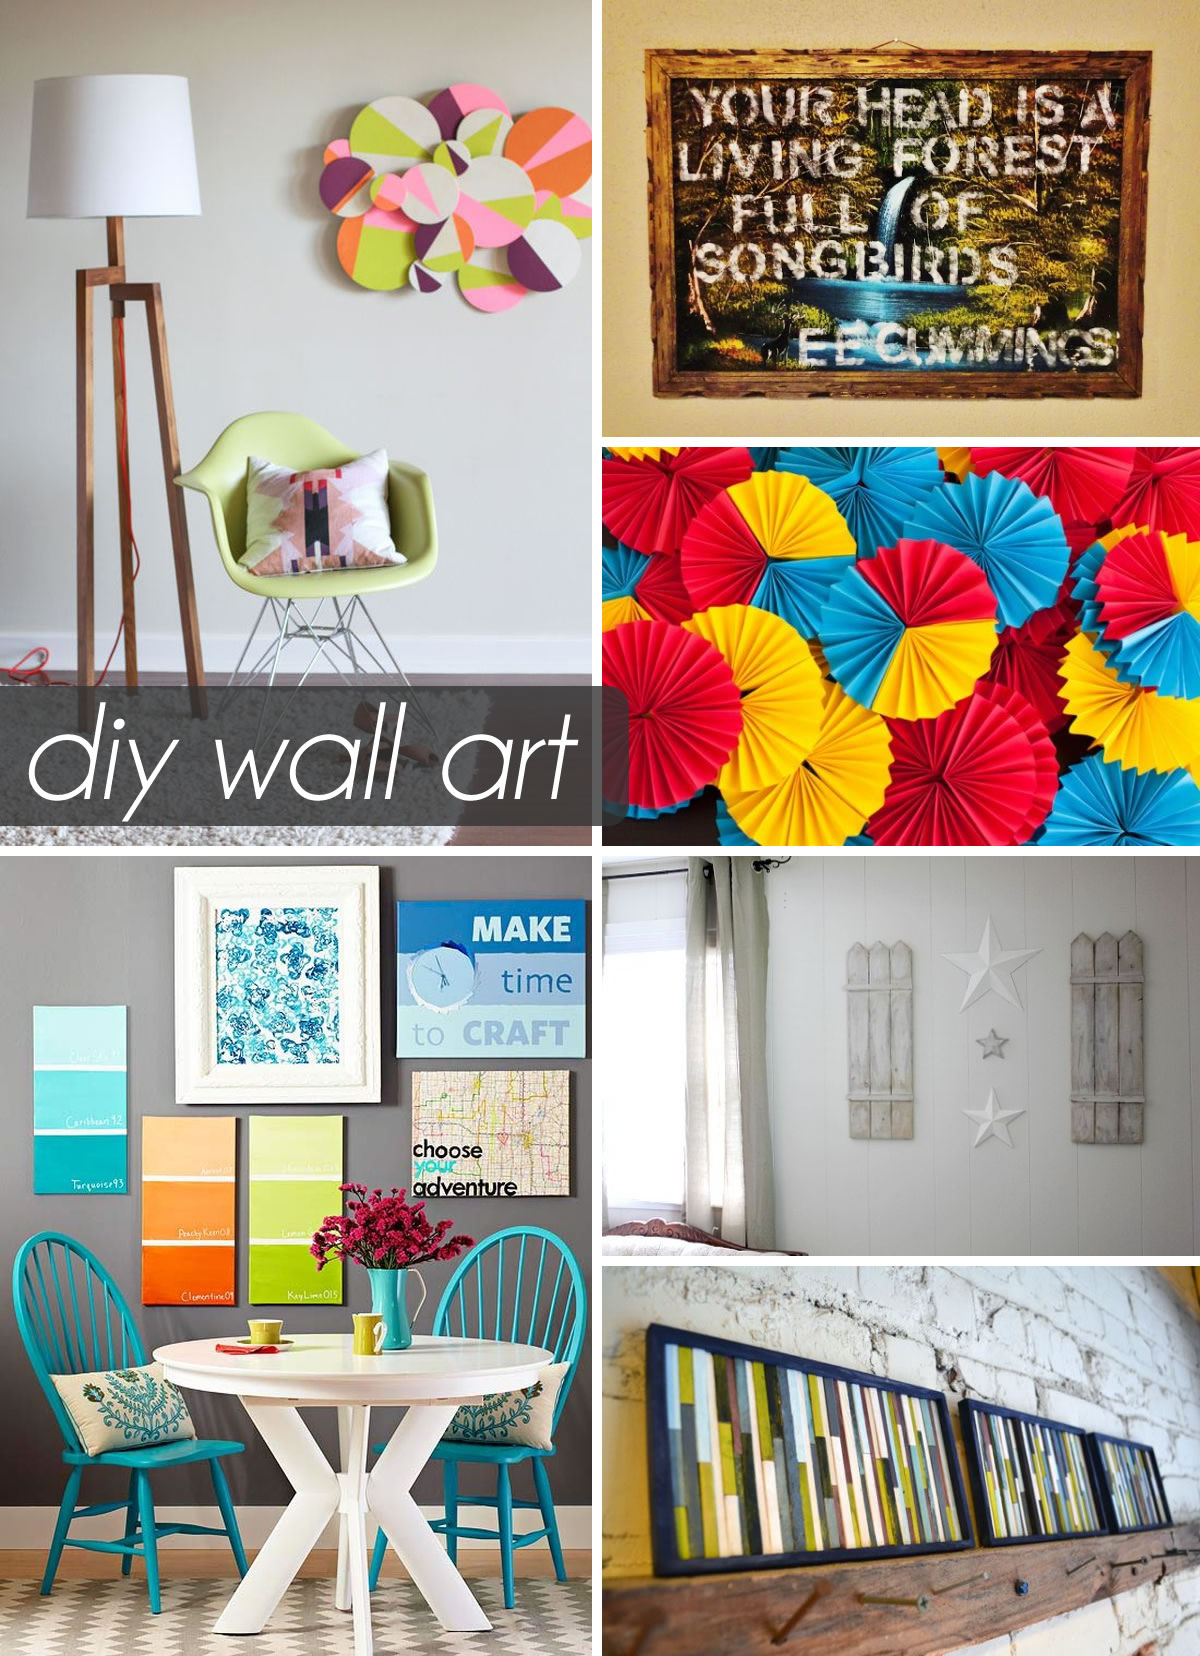 Captivating 50 Beautiful DIY Wall Art Ideas For Your Home